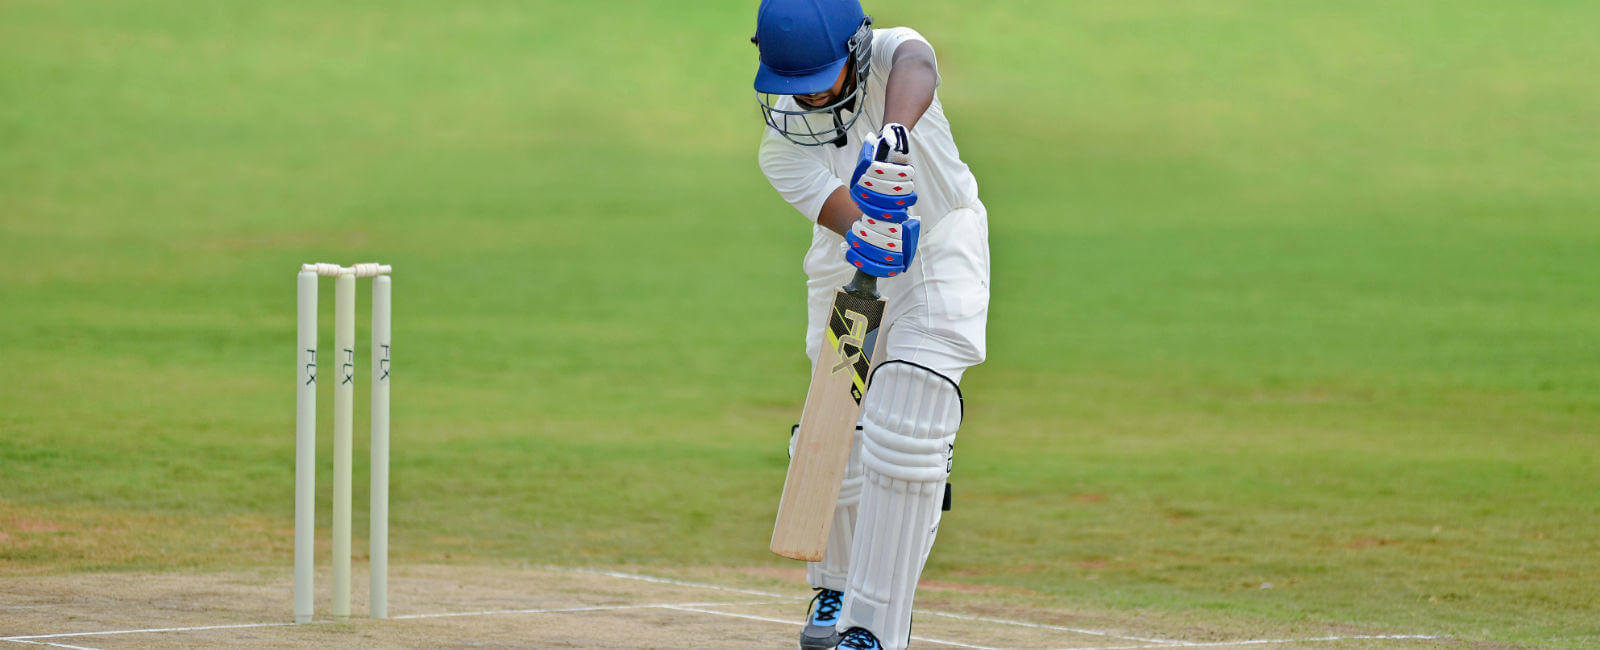 List of Important Cricket Equipment that you Should have